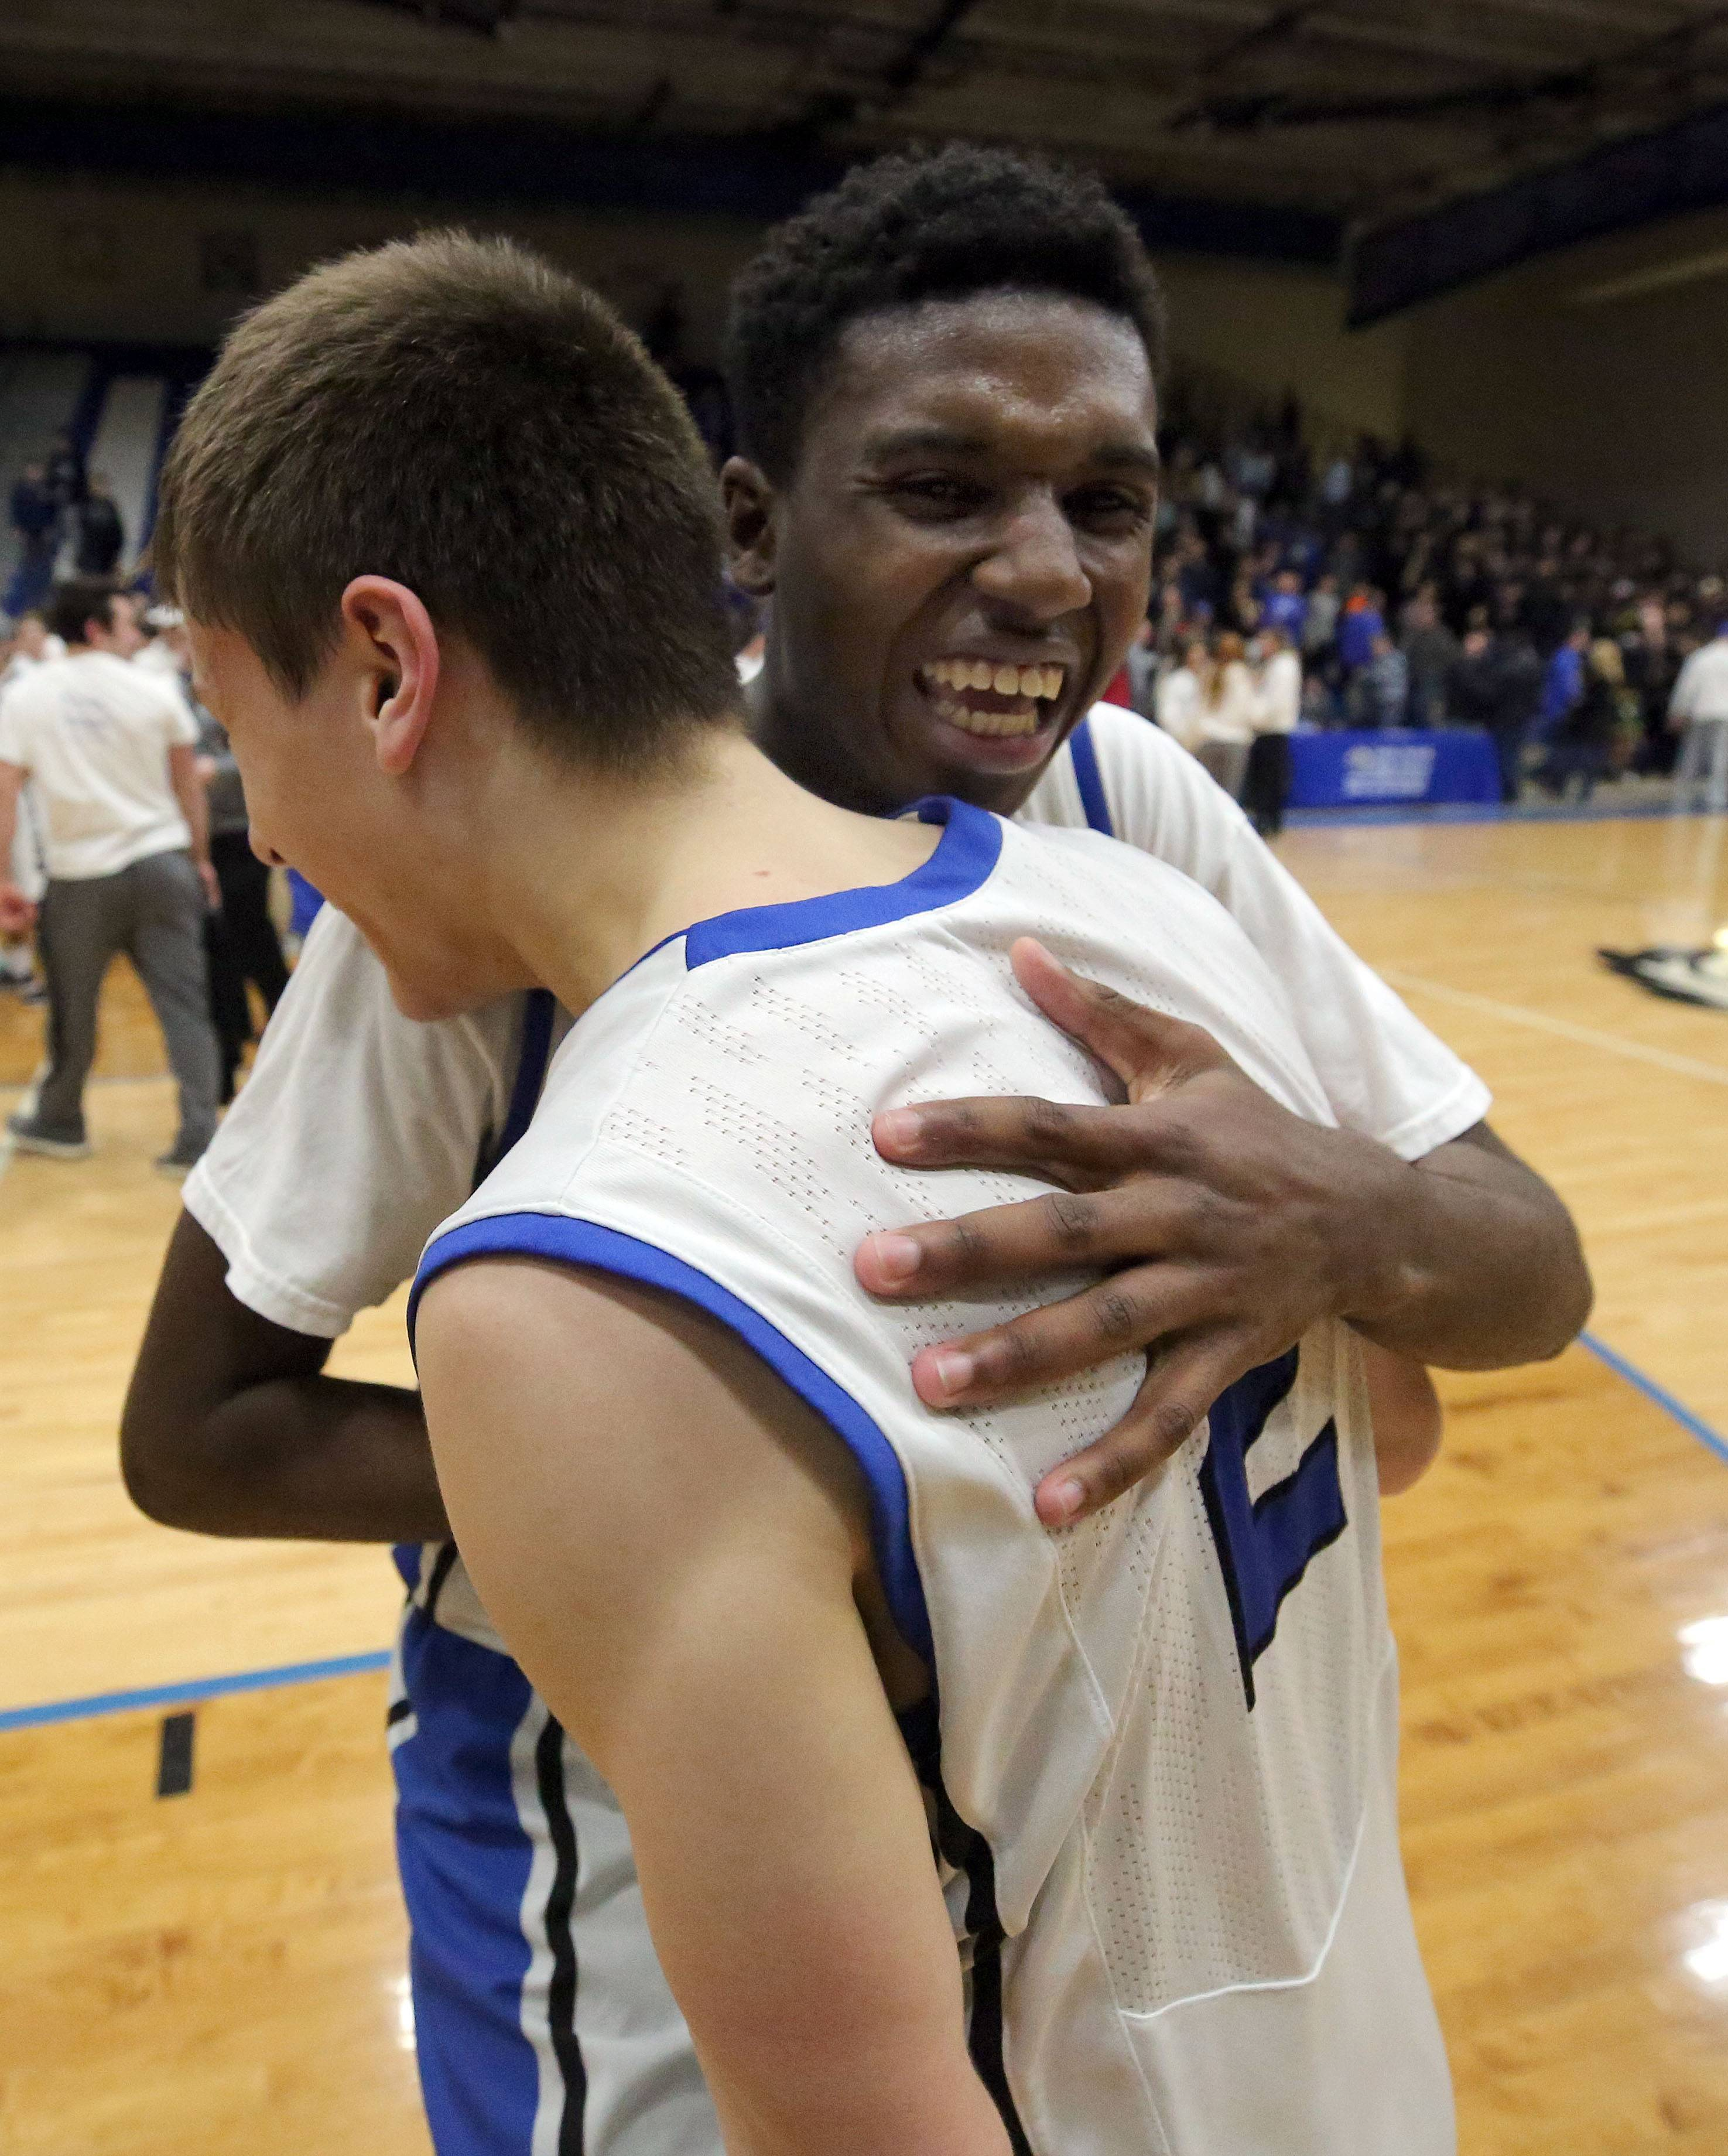 Lake Zurich's Kenny Haynes, right, hugs teammate JR Cison during the Class 4A sectional semifinal at Lake Zurich High School on Tuesday. The Bears topped Libertyville 54-50 to earn a spot in Friday's final; see story on Page 6.